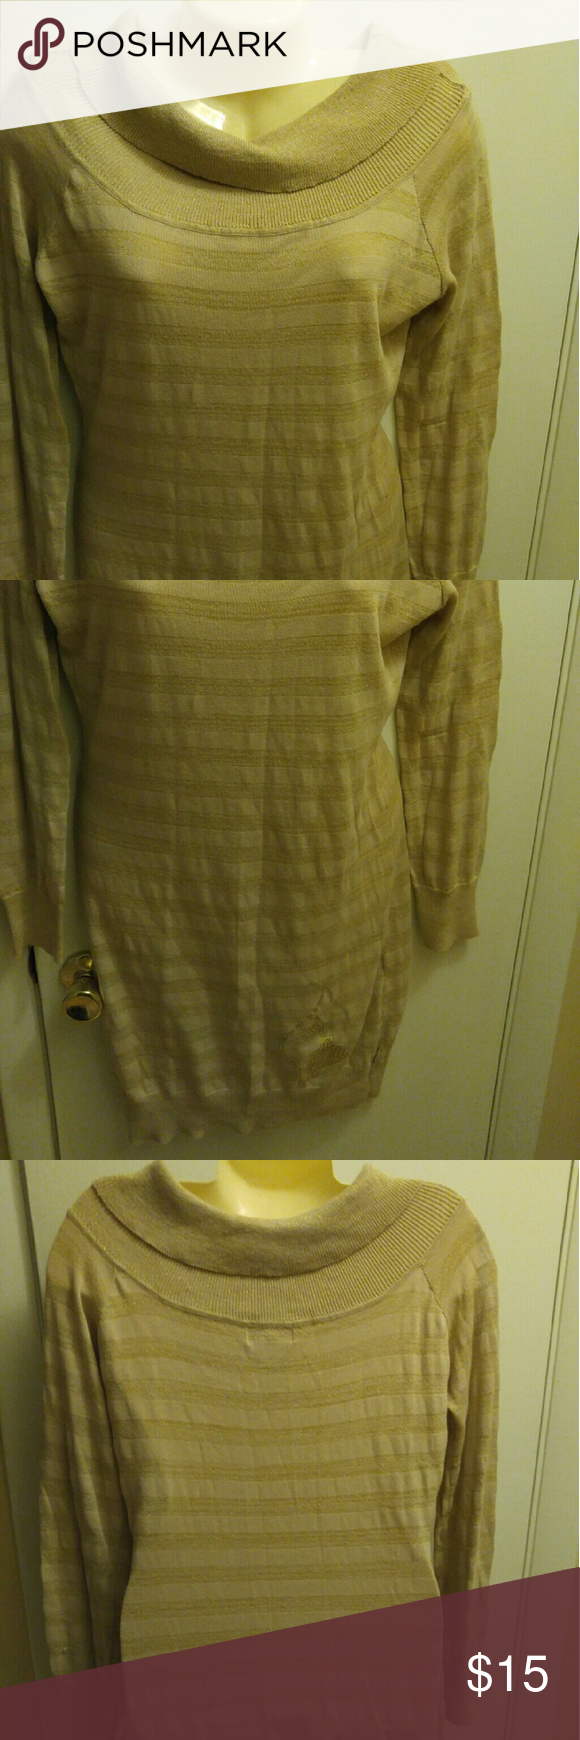 Baby Phat Gold Dress Large | D, Tops and Babies